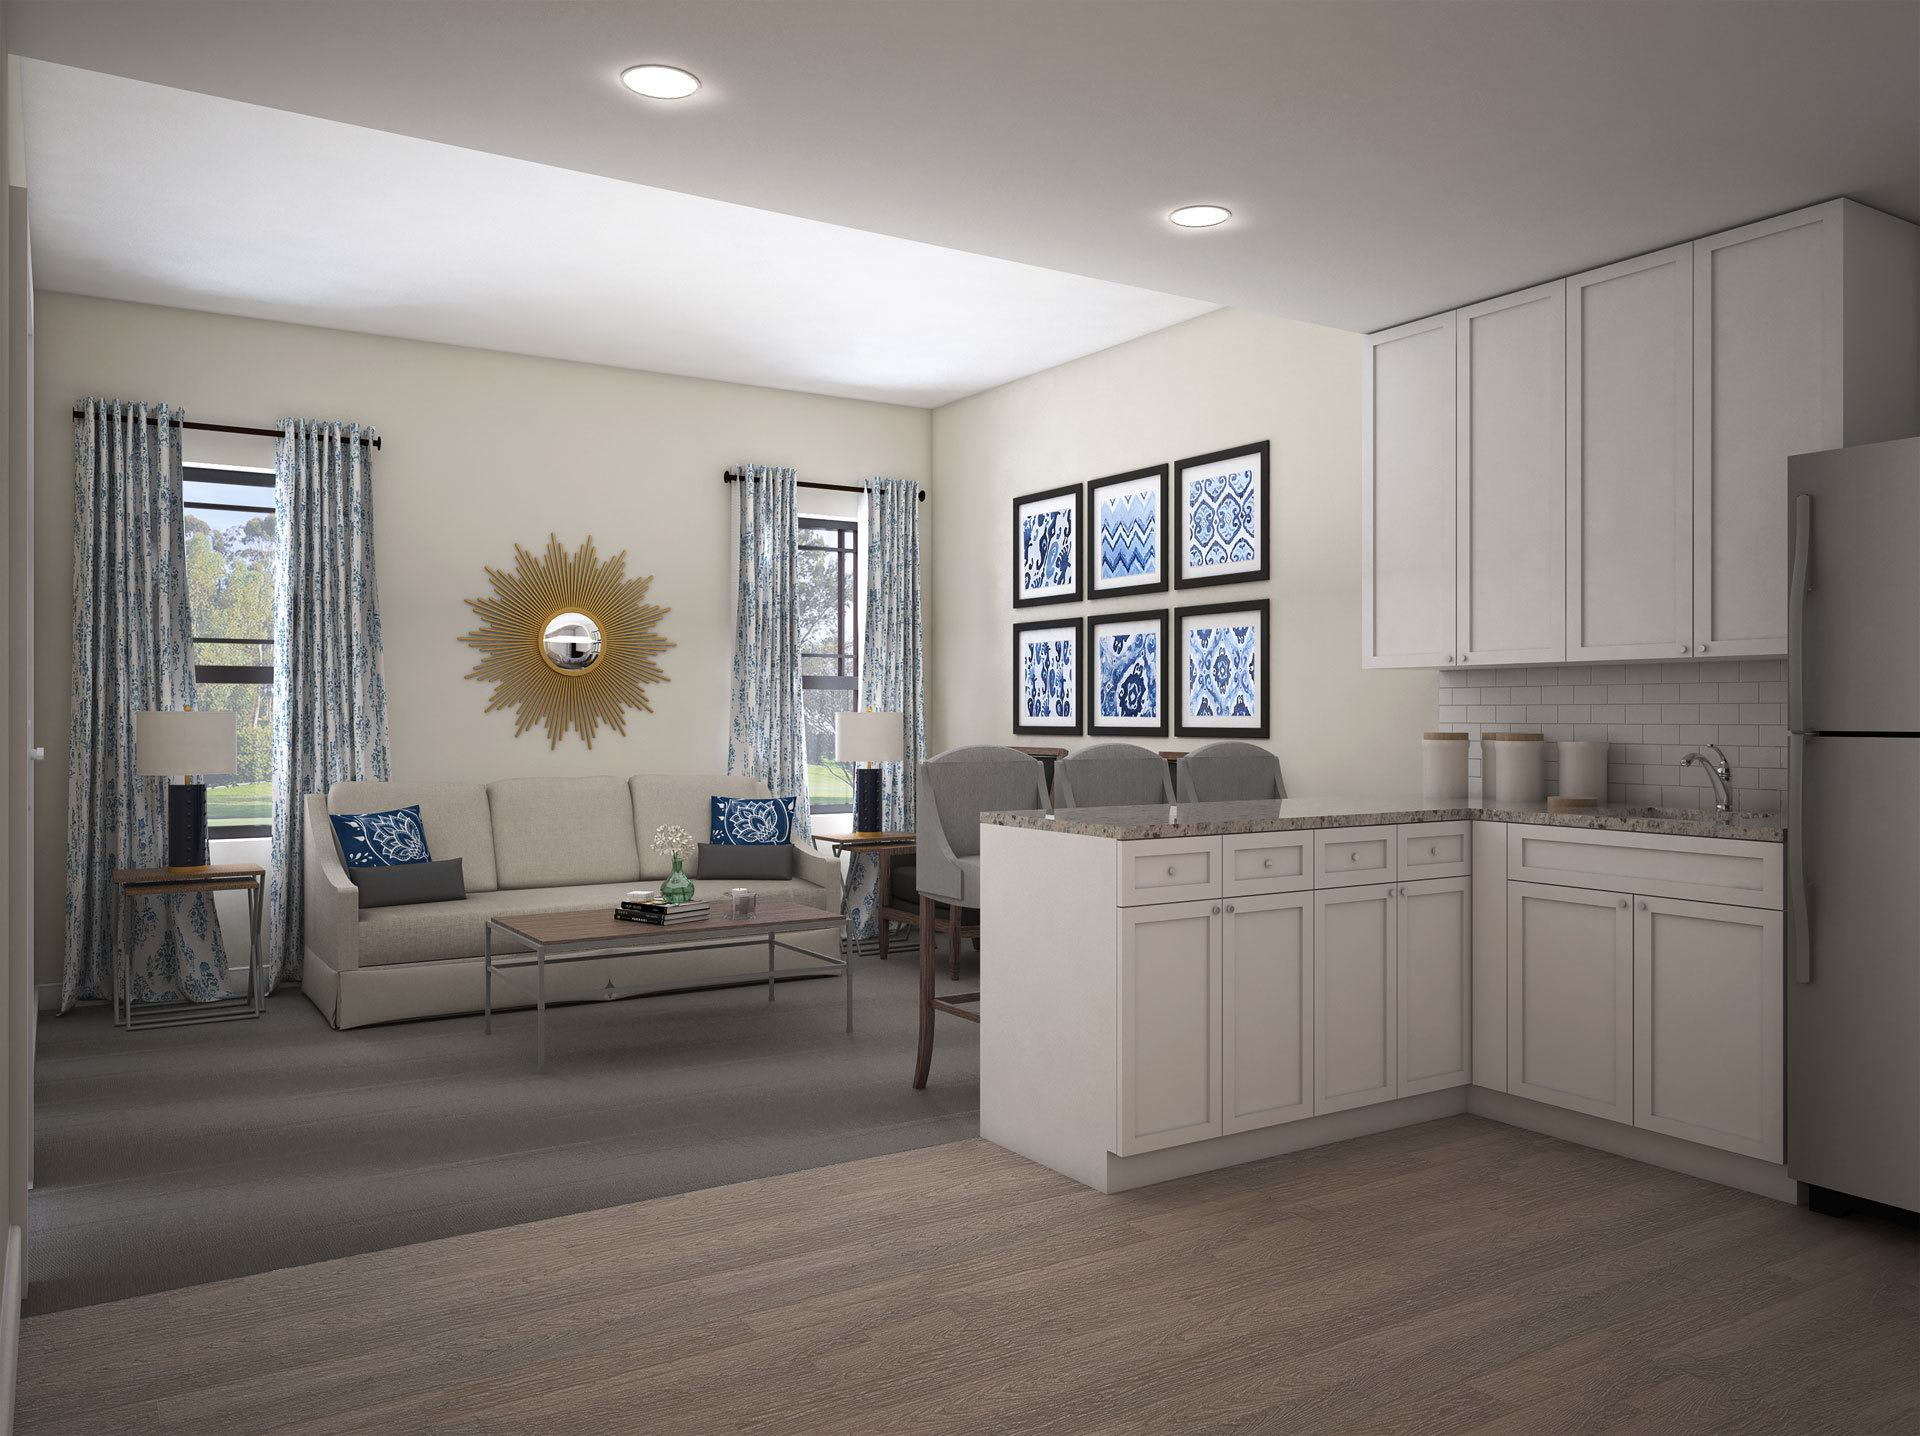 Apartment Render The Phoenix at James Creek